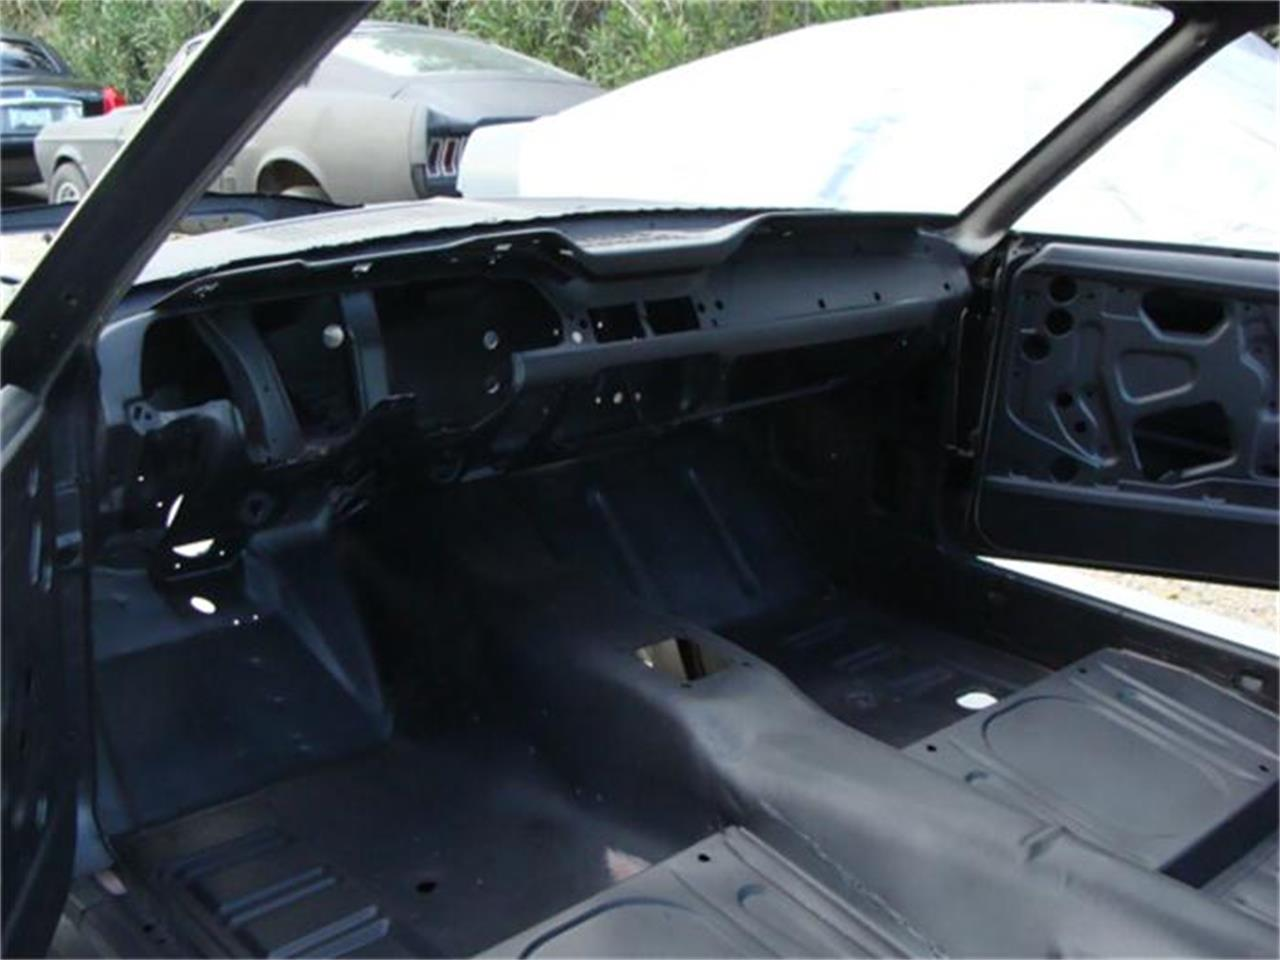 Large Picture of '67 Mustang located in Scottsdale Arizona - $16,700.00 - 8YY0